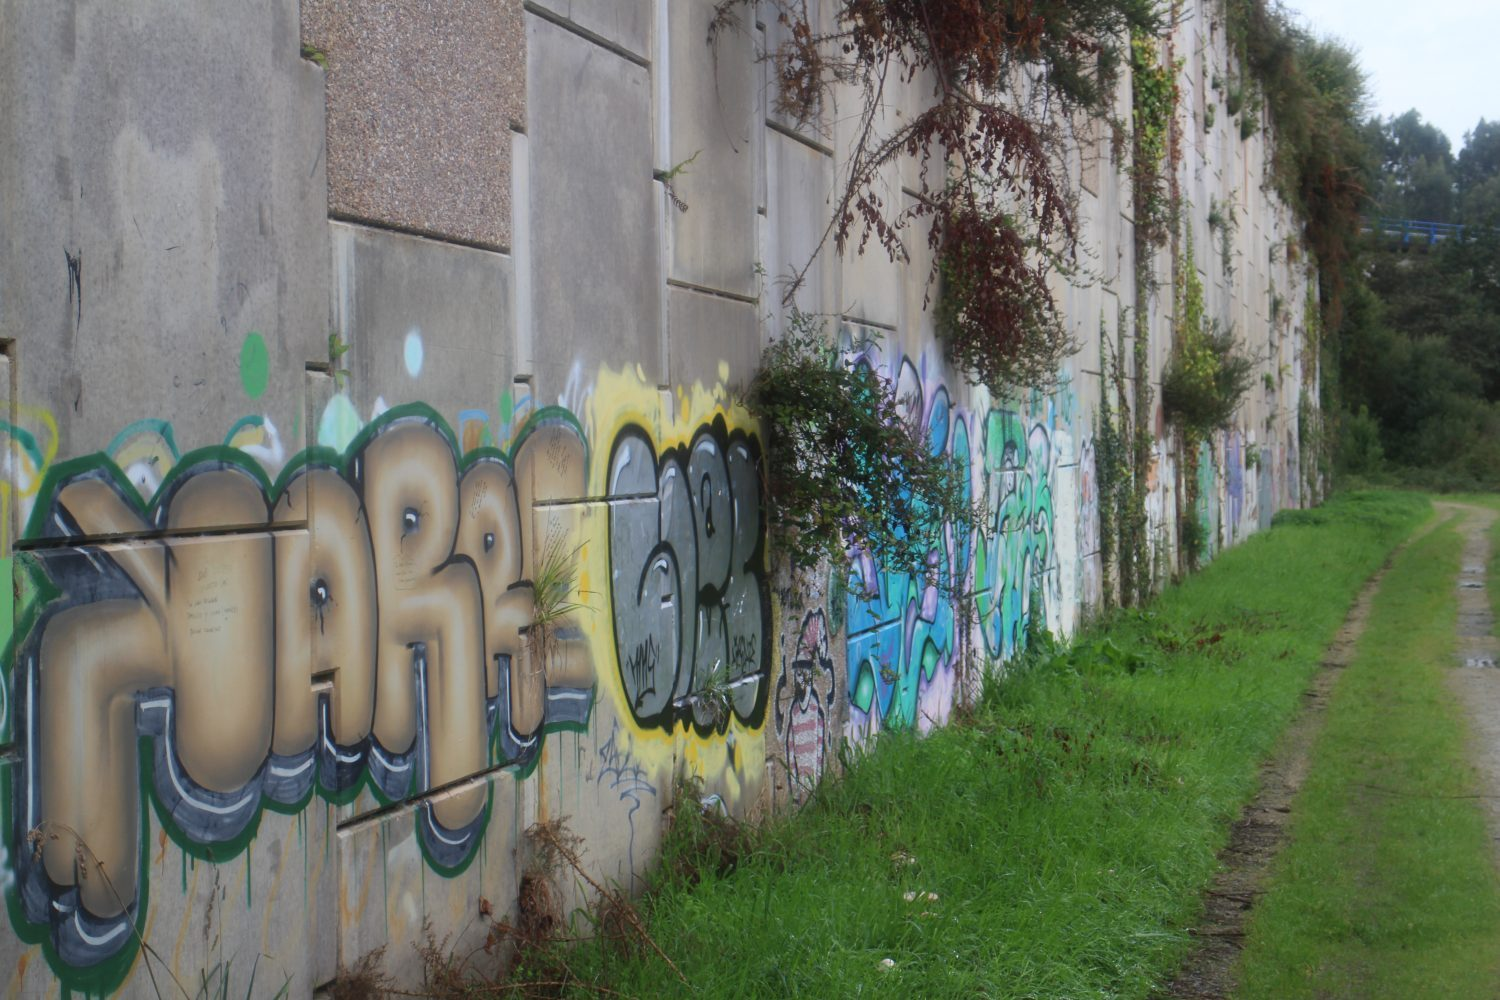 Graffiti along Camino Inglés